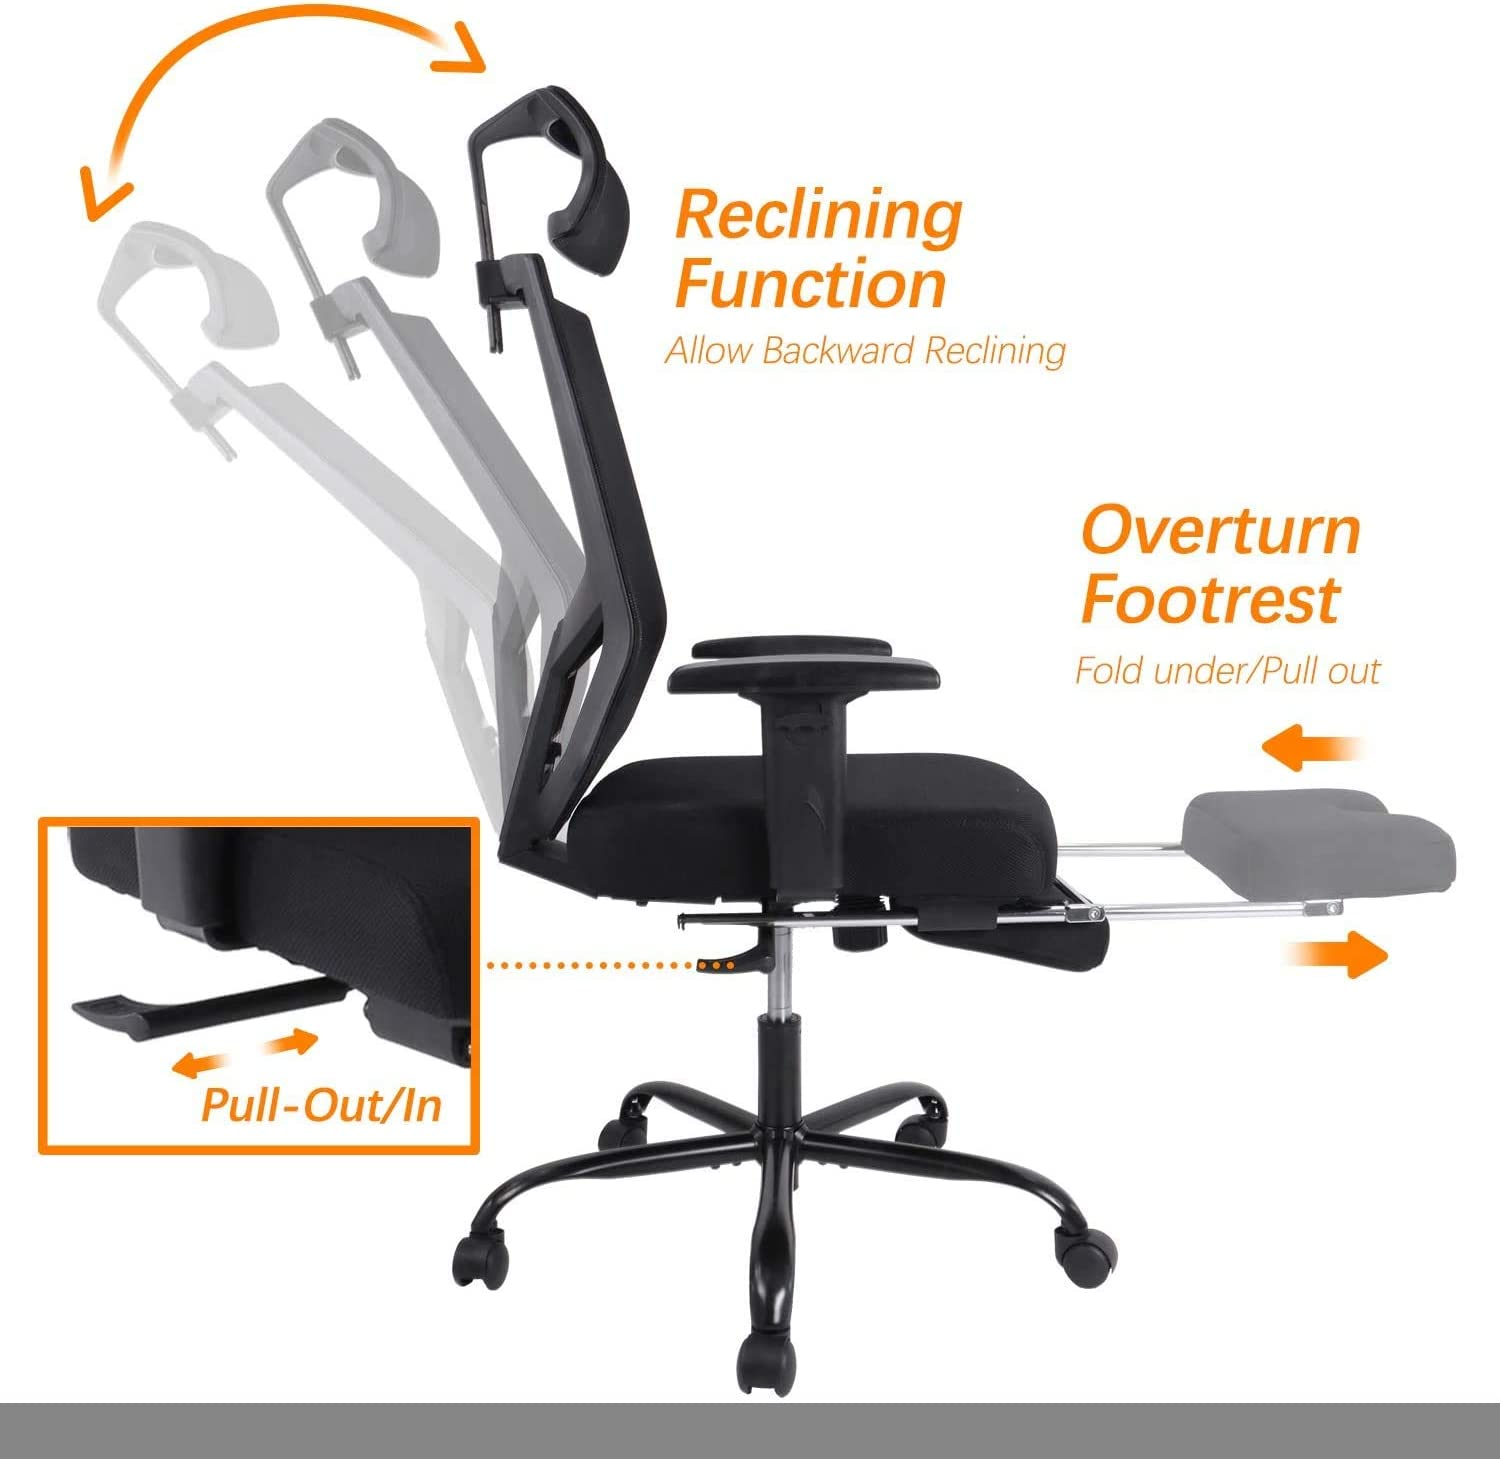 61vNkiTsfEL. AC SL1500 - What is The Best Computer Chair For Long Hours Sitting? [Comfortable and Ergonomic] - ChairPicks